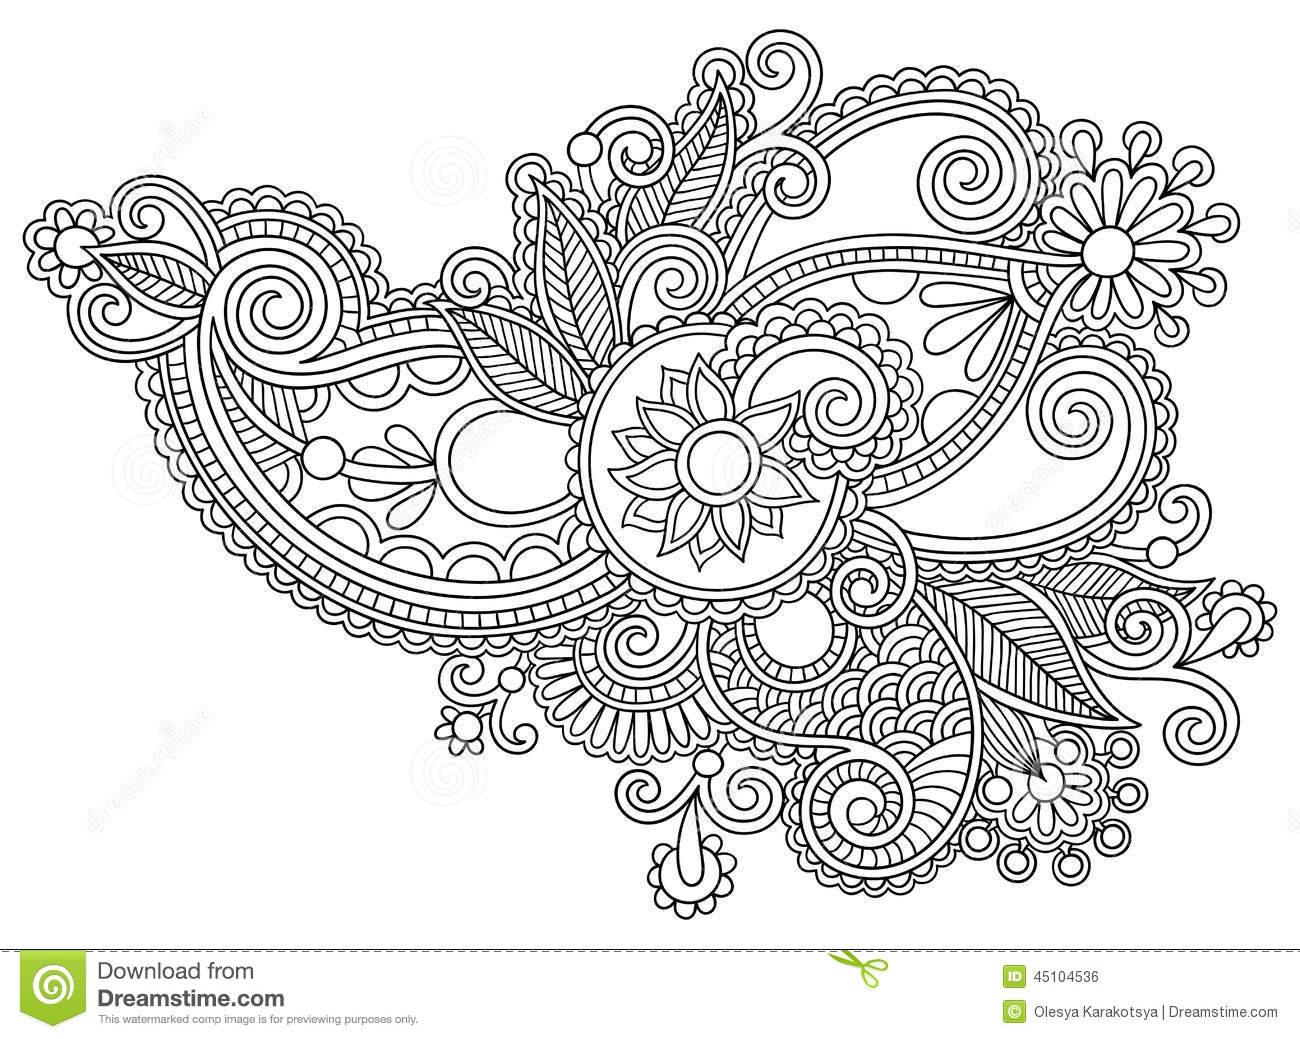 Line Art Flowers Vector : Black line art ornate flower design ukrainian stock